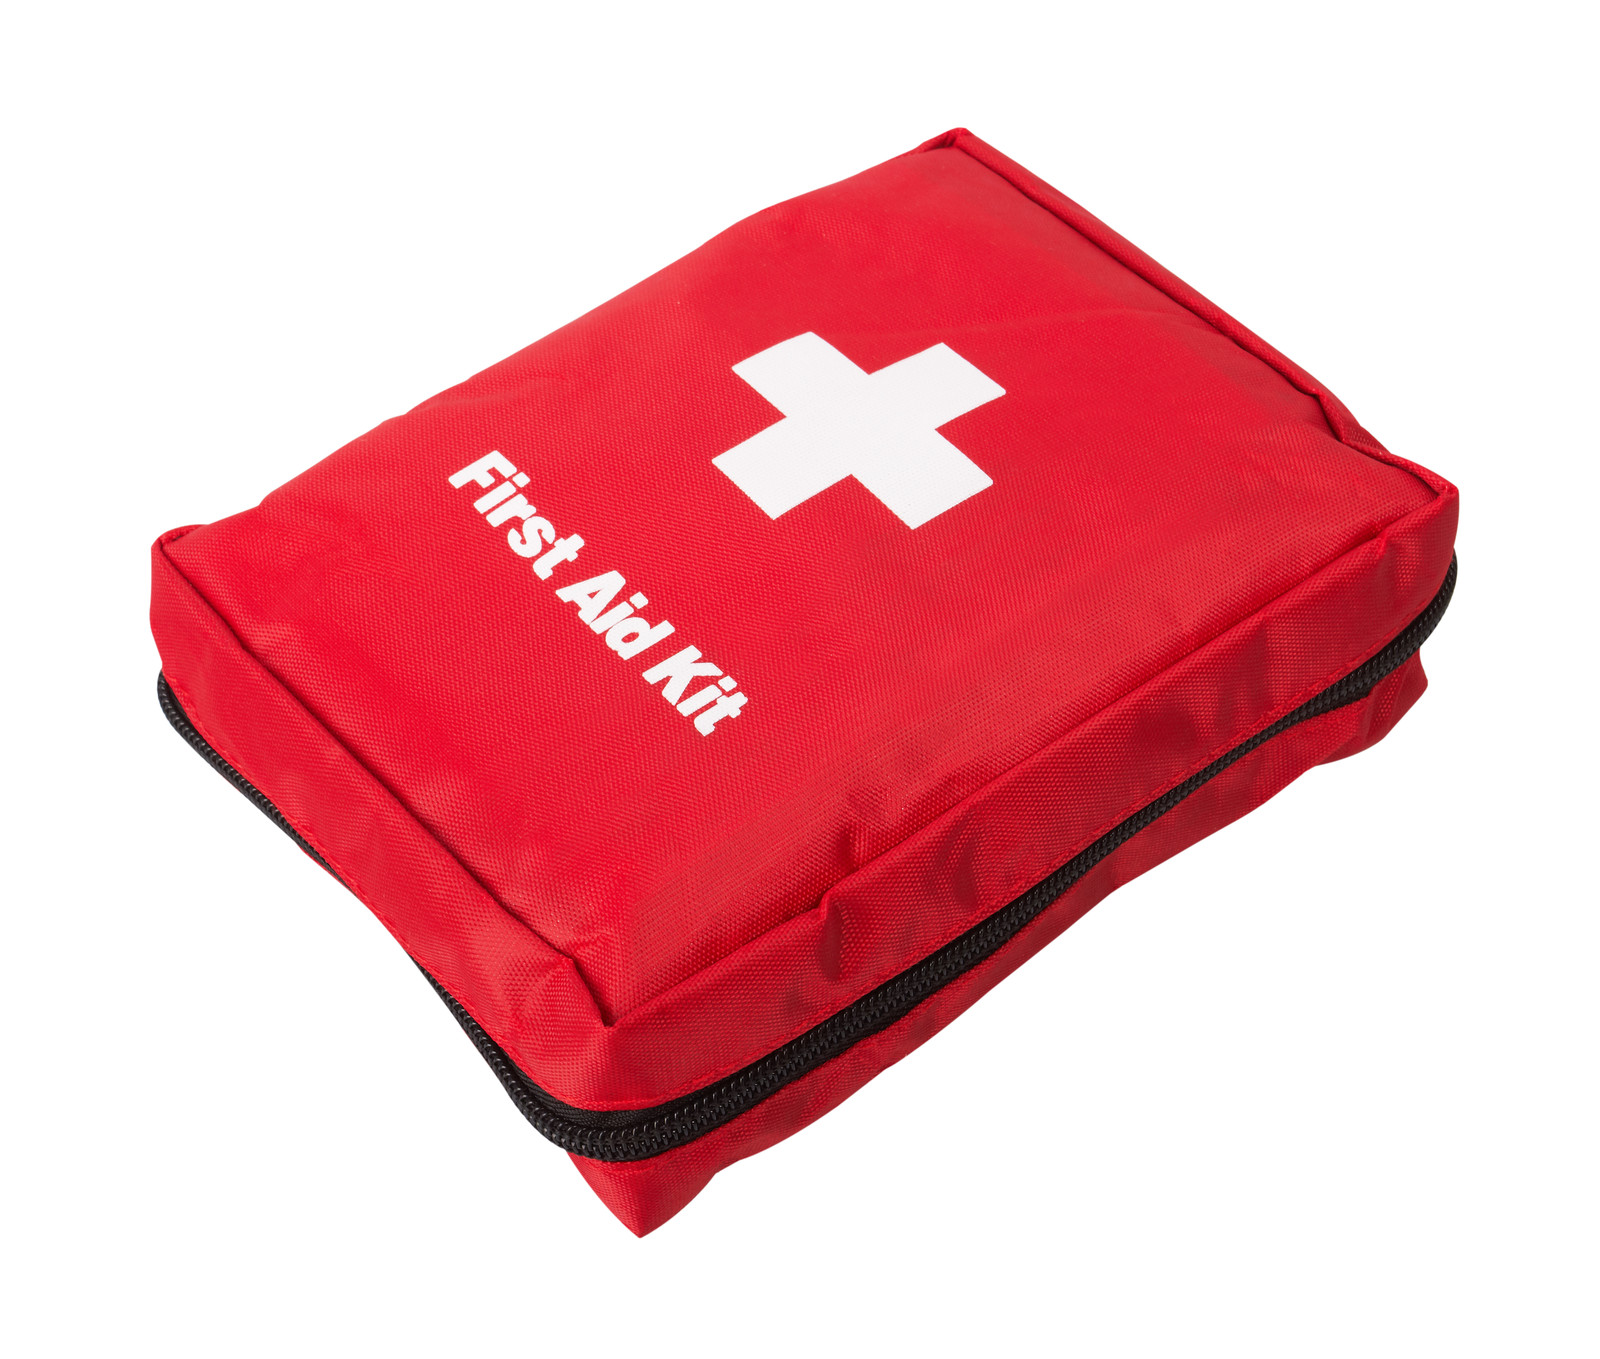 Boat Safety Equipment, First Aid Kit